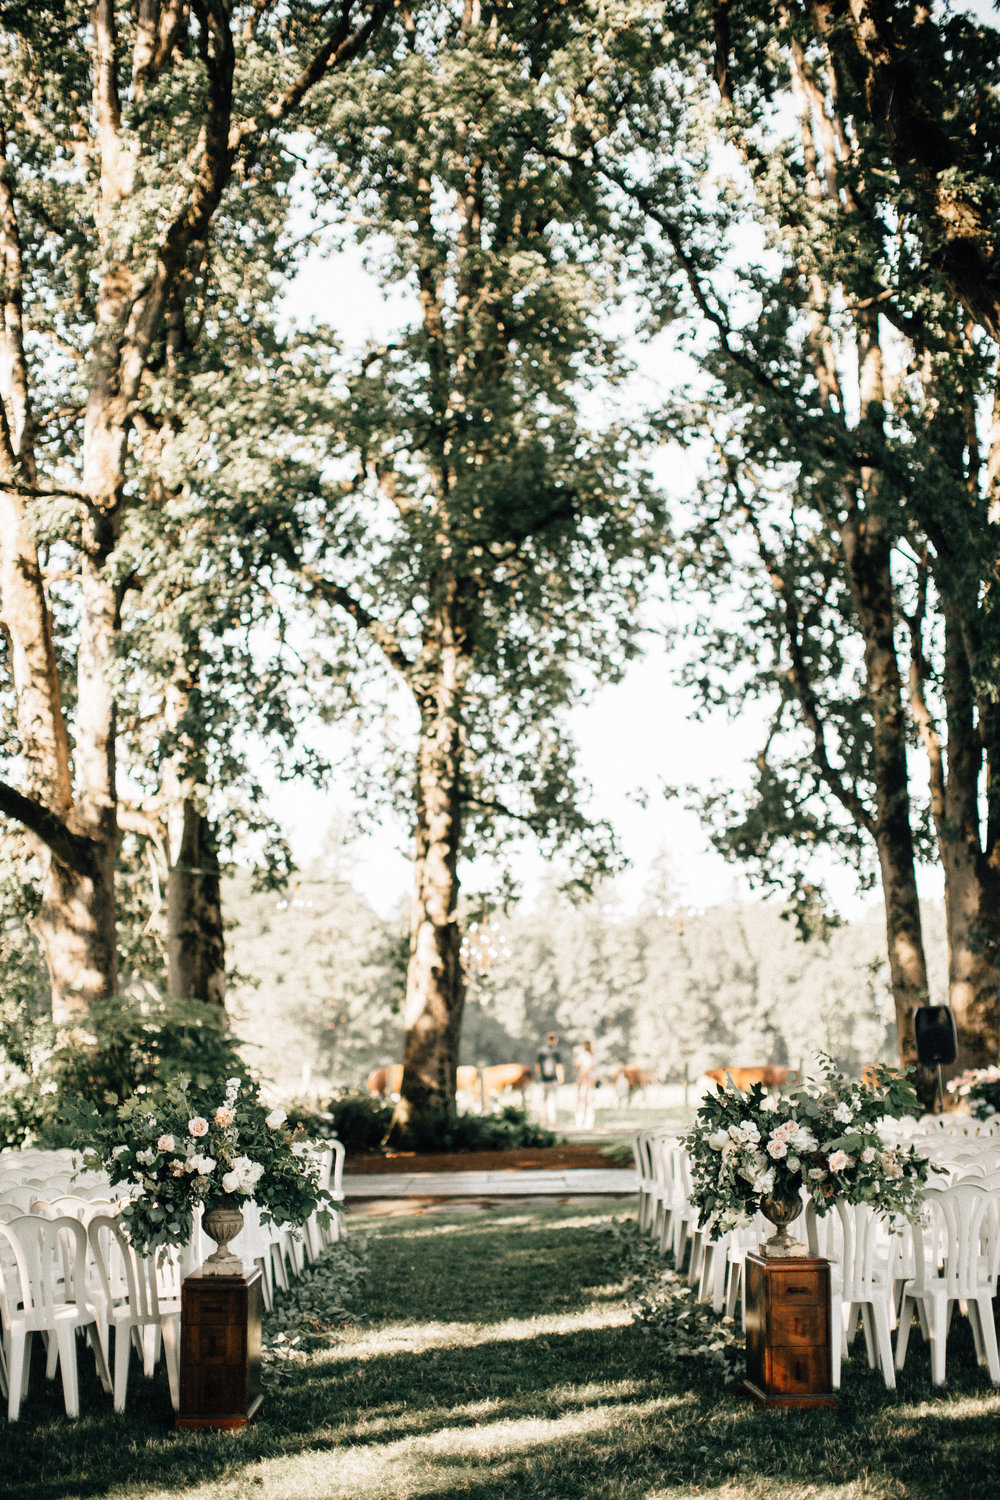 Postlewait's Wedding venue in Canby Oregon